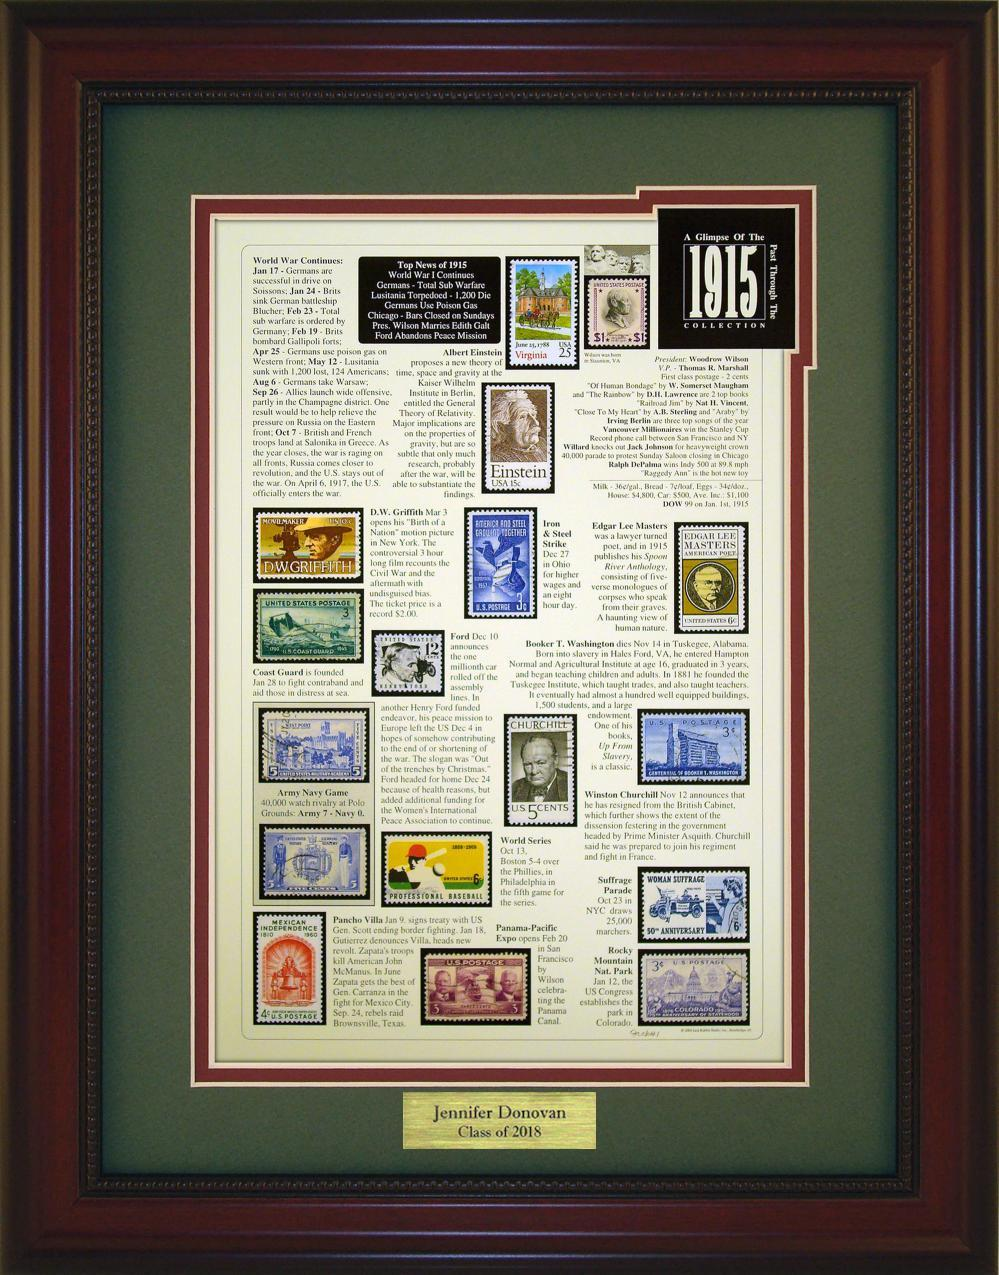 Year 1915 - Personalized Unique Framed Gift